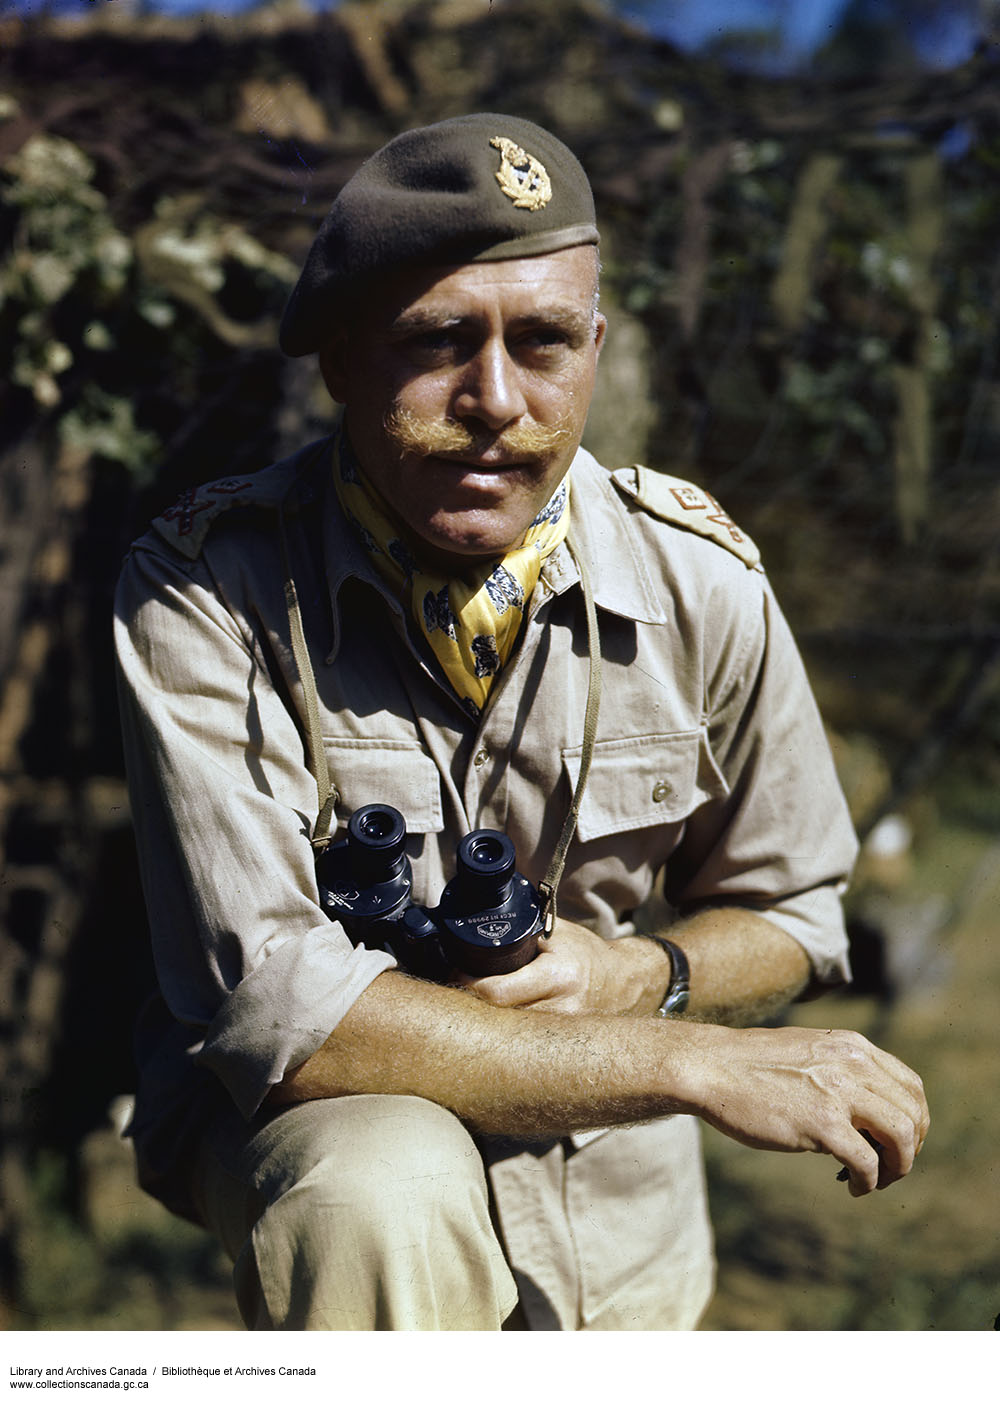 Major-General Chris Vokes ca. 1943-1965 (Source: Library and Archives Canada)